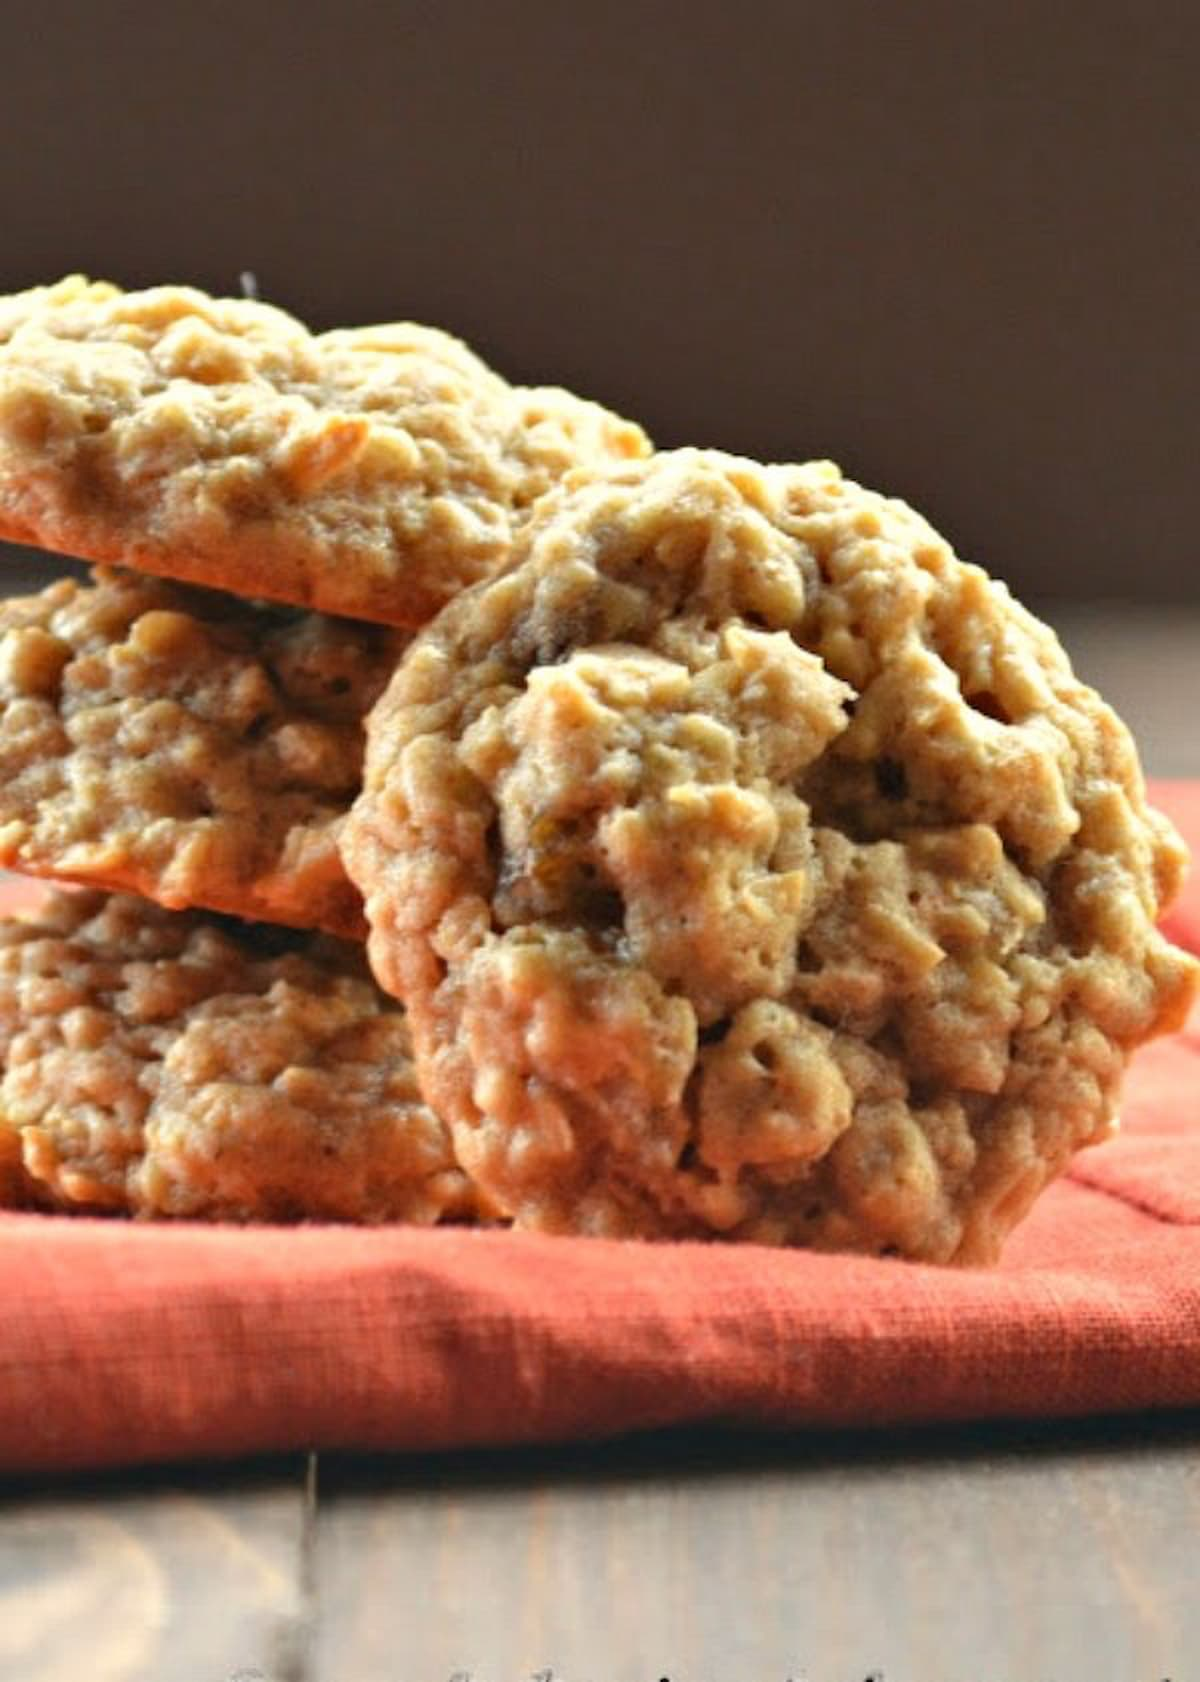 Chewy Spicy Oatmeal Raisin Cookies on an orange napkin.